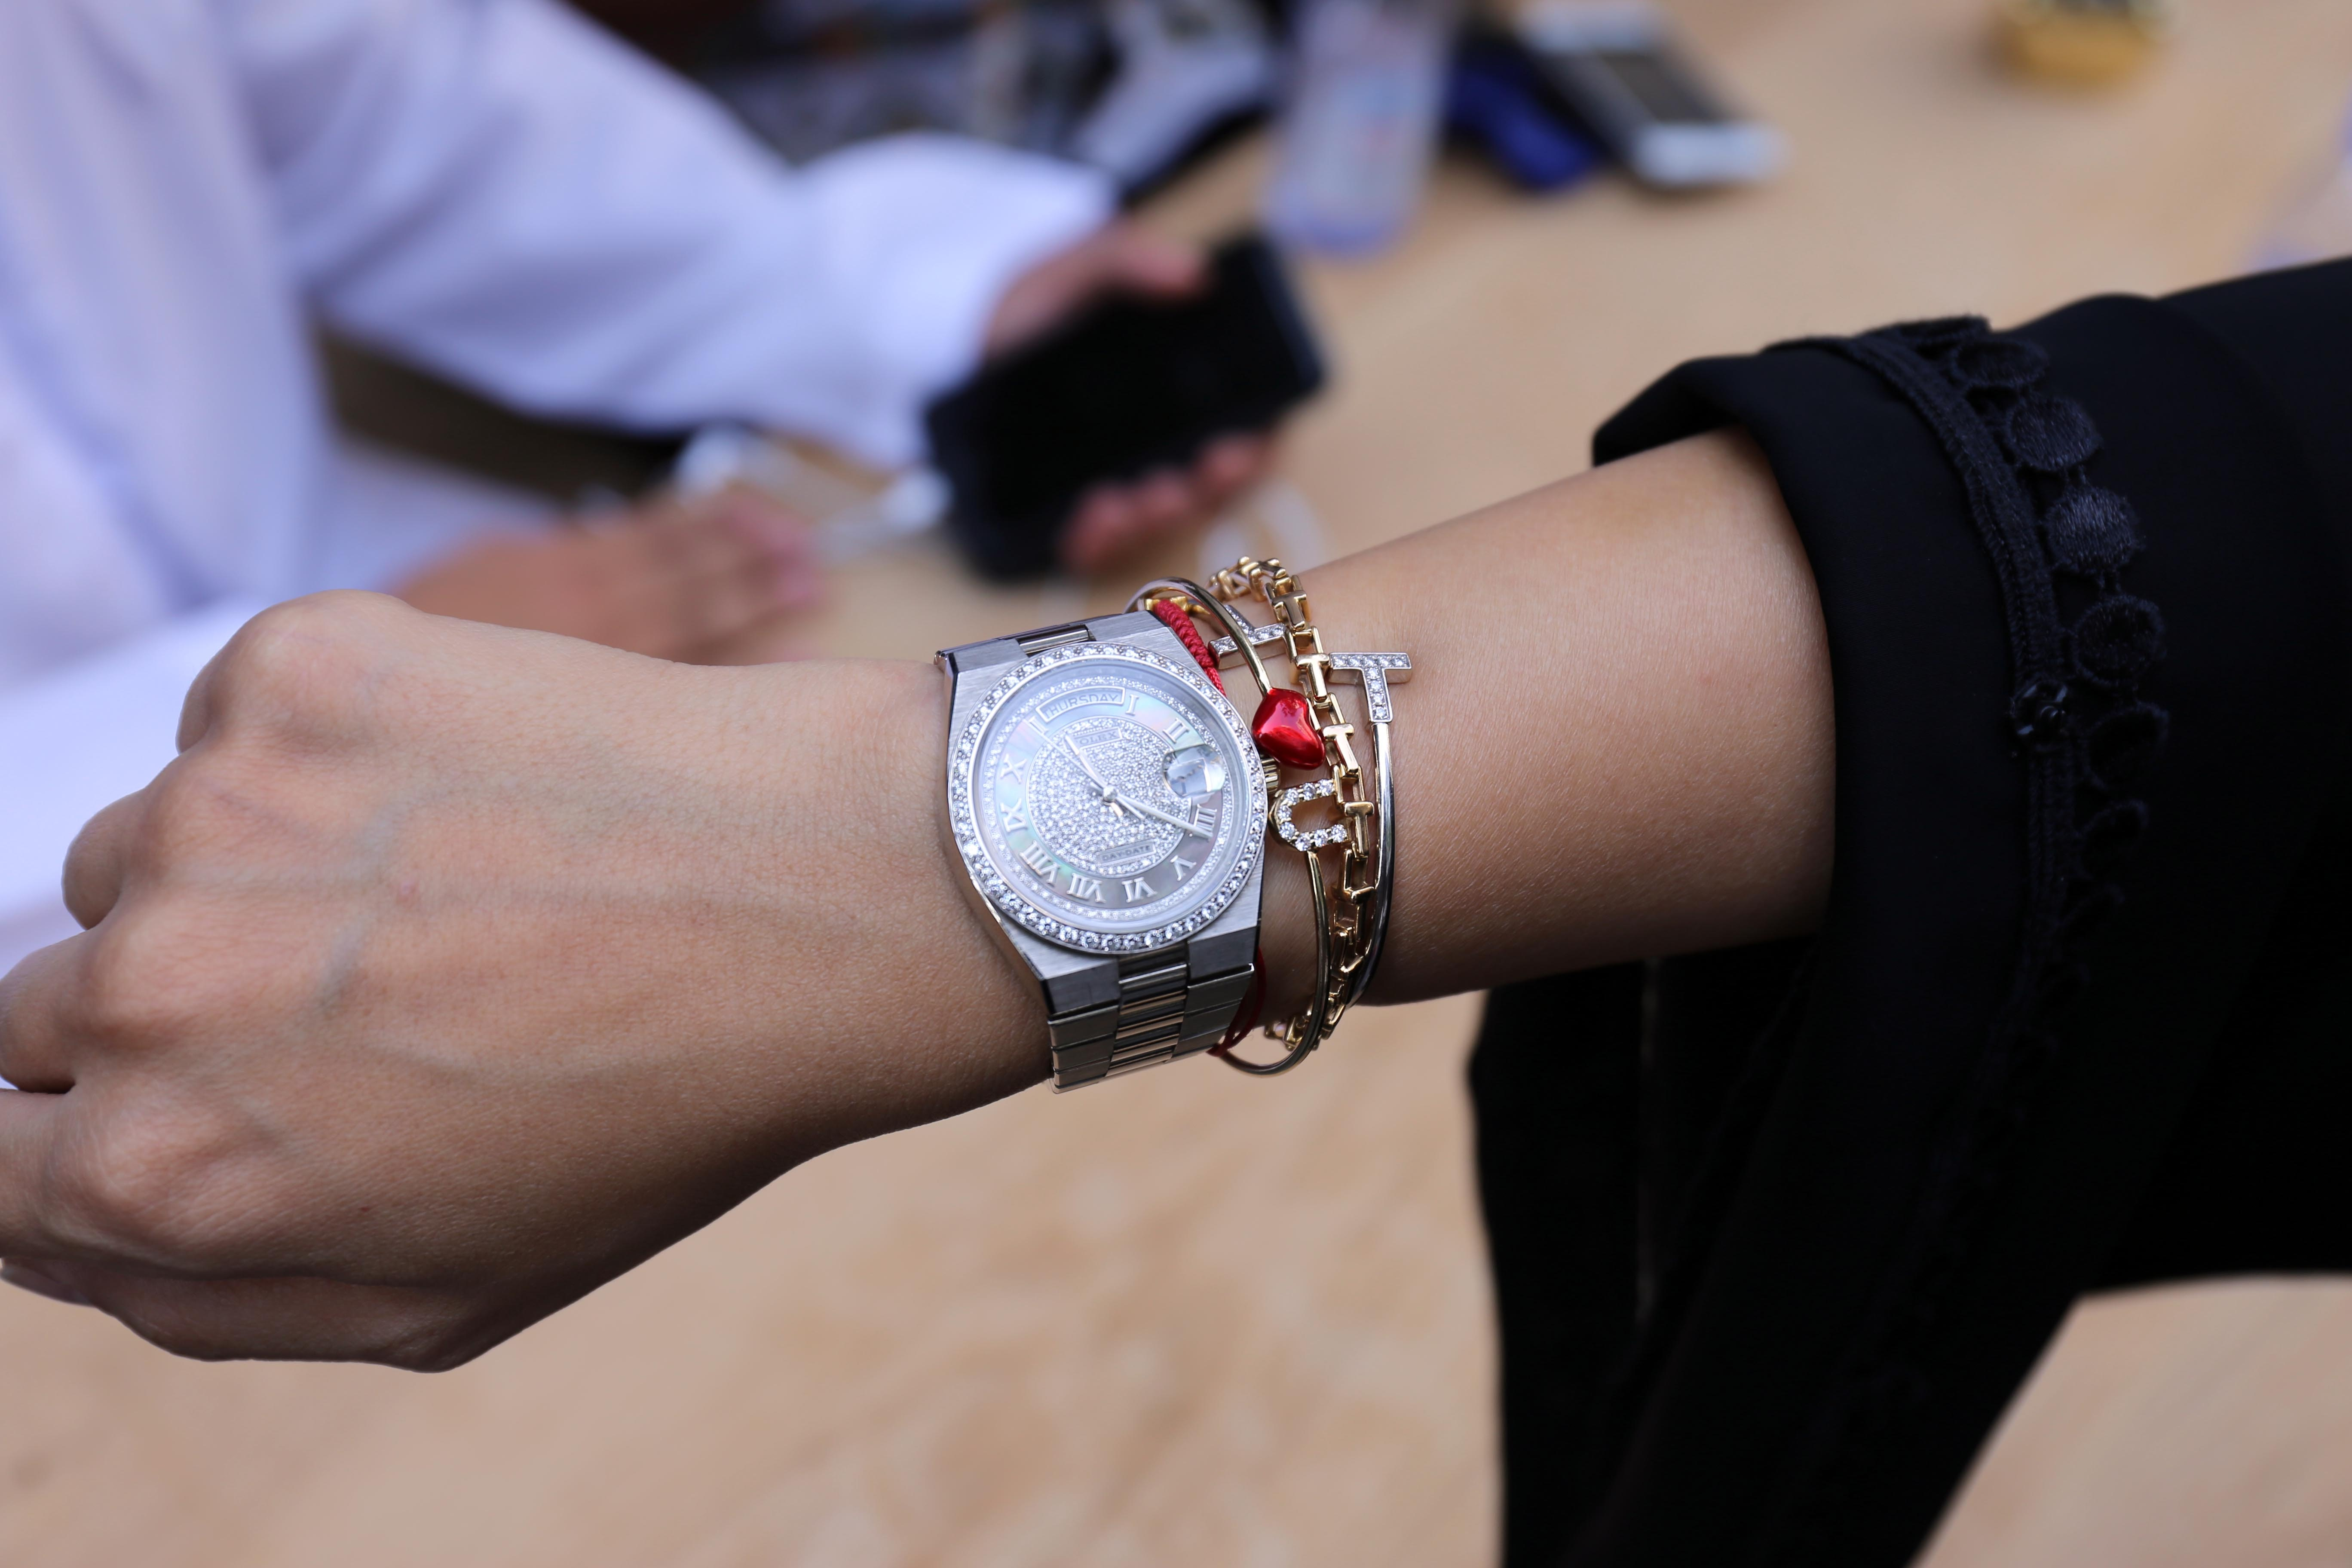 Photo Report: Dubai Watch Week 2016, One Of The Year's Best New Watch Events Photo Report: Dubai Watch Week 2016, One Of The Year's Best New Watch Events IMG 2869